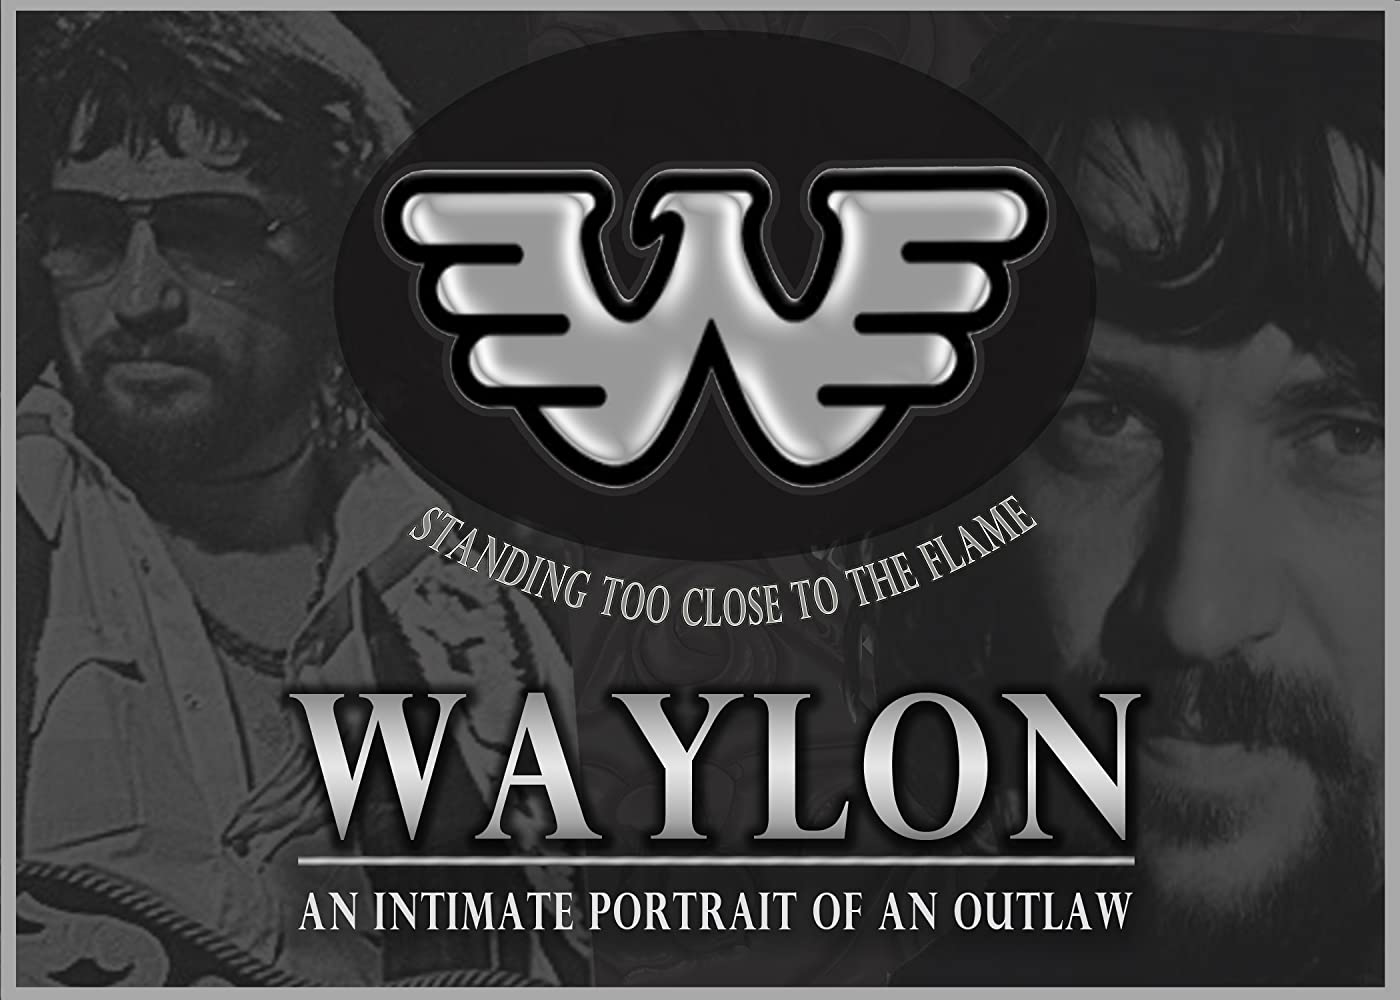 WAYLON: An Intimate Portrait of an Outlaw (2017)